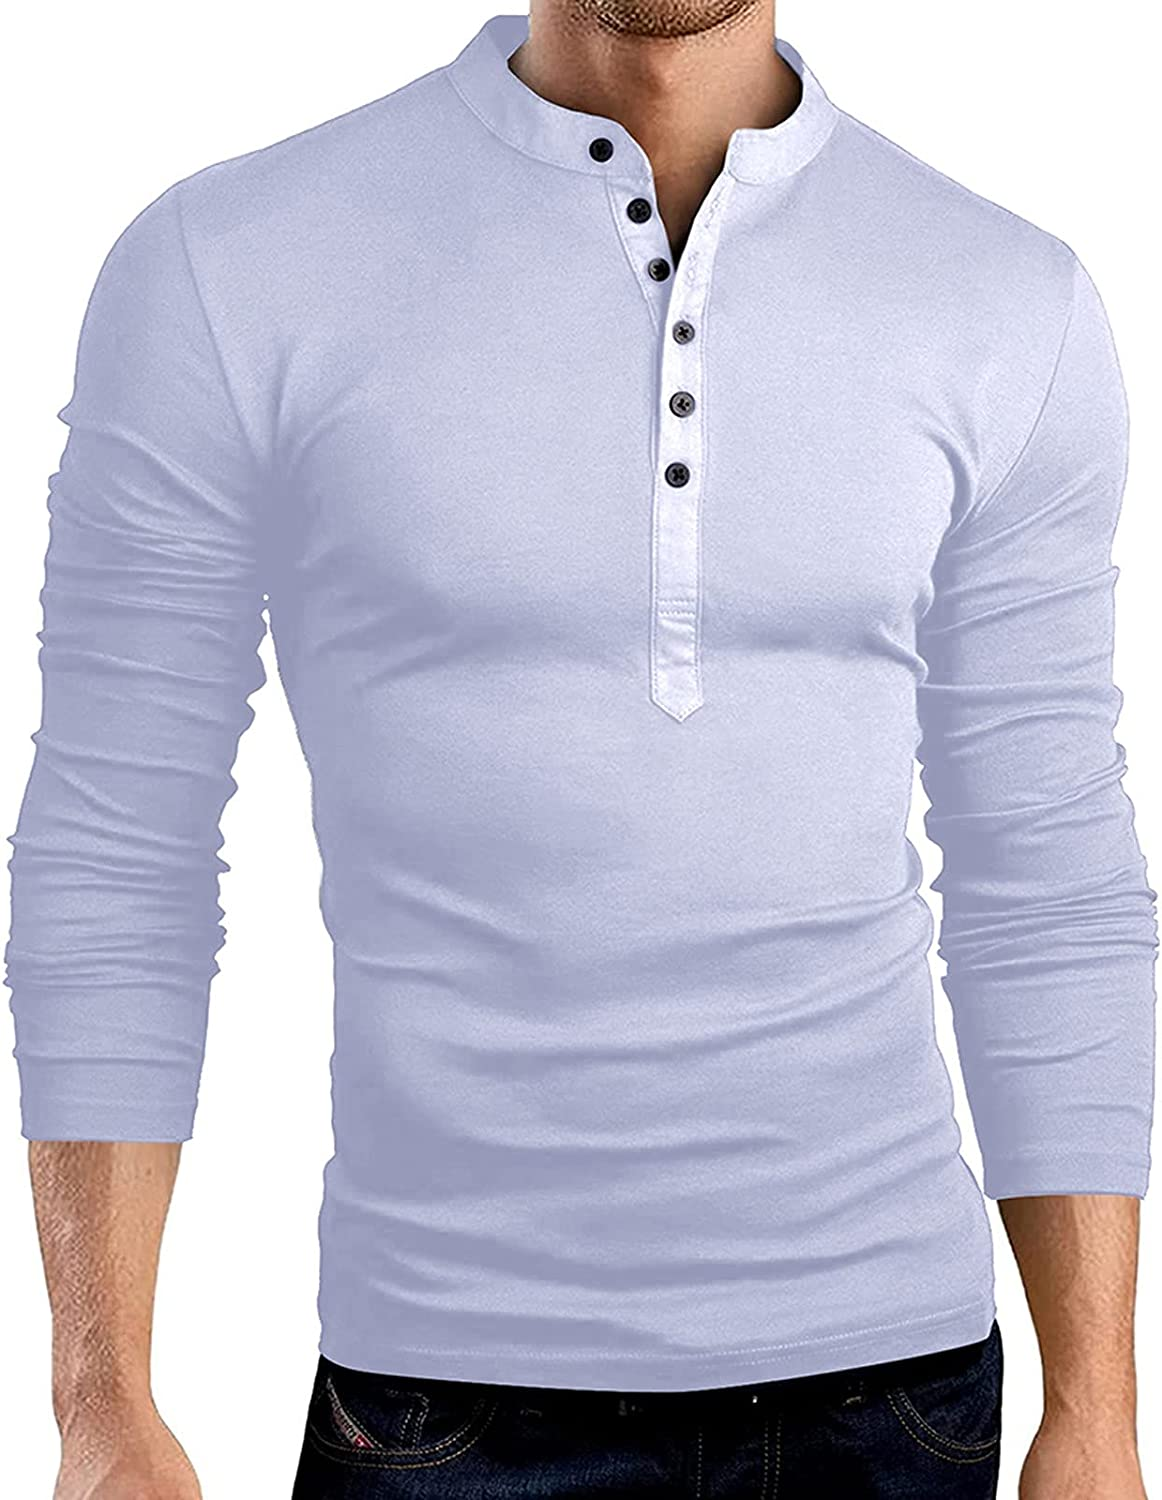 LEIYAN Mens Stylish Slim Fit Button Henley Shirts Big and Tall Workwear Long Sleeve Active Gym Workout Training Tops